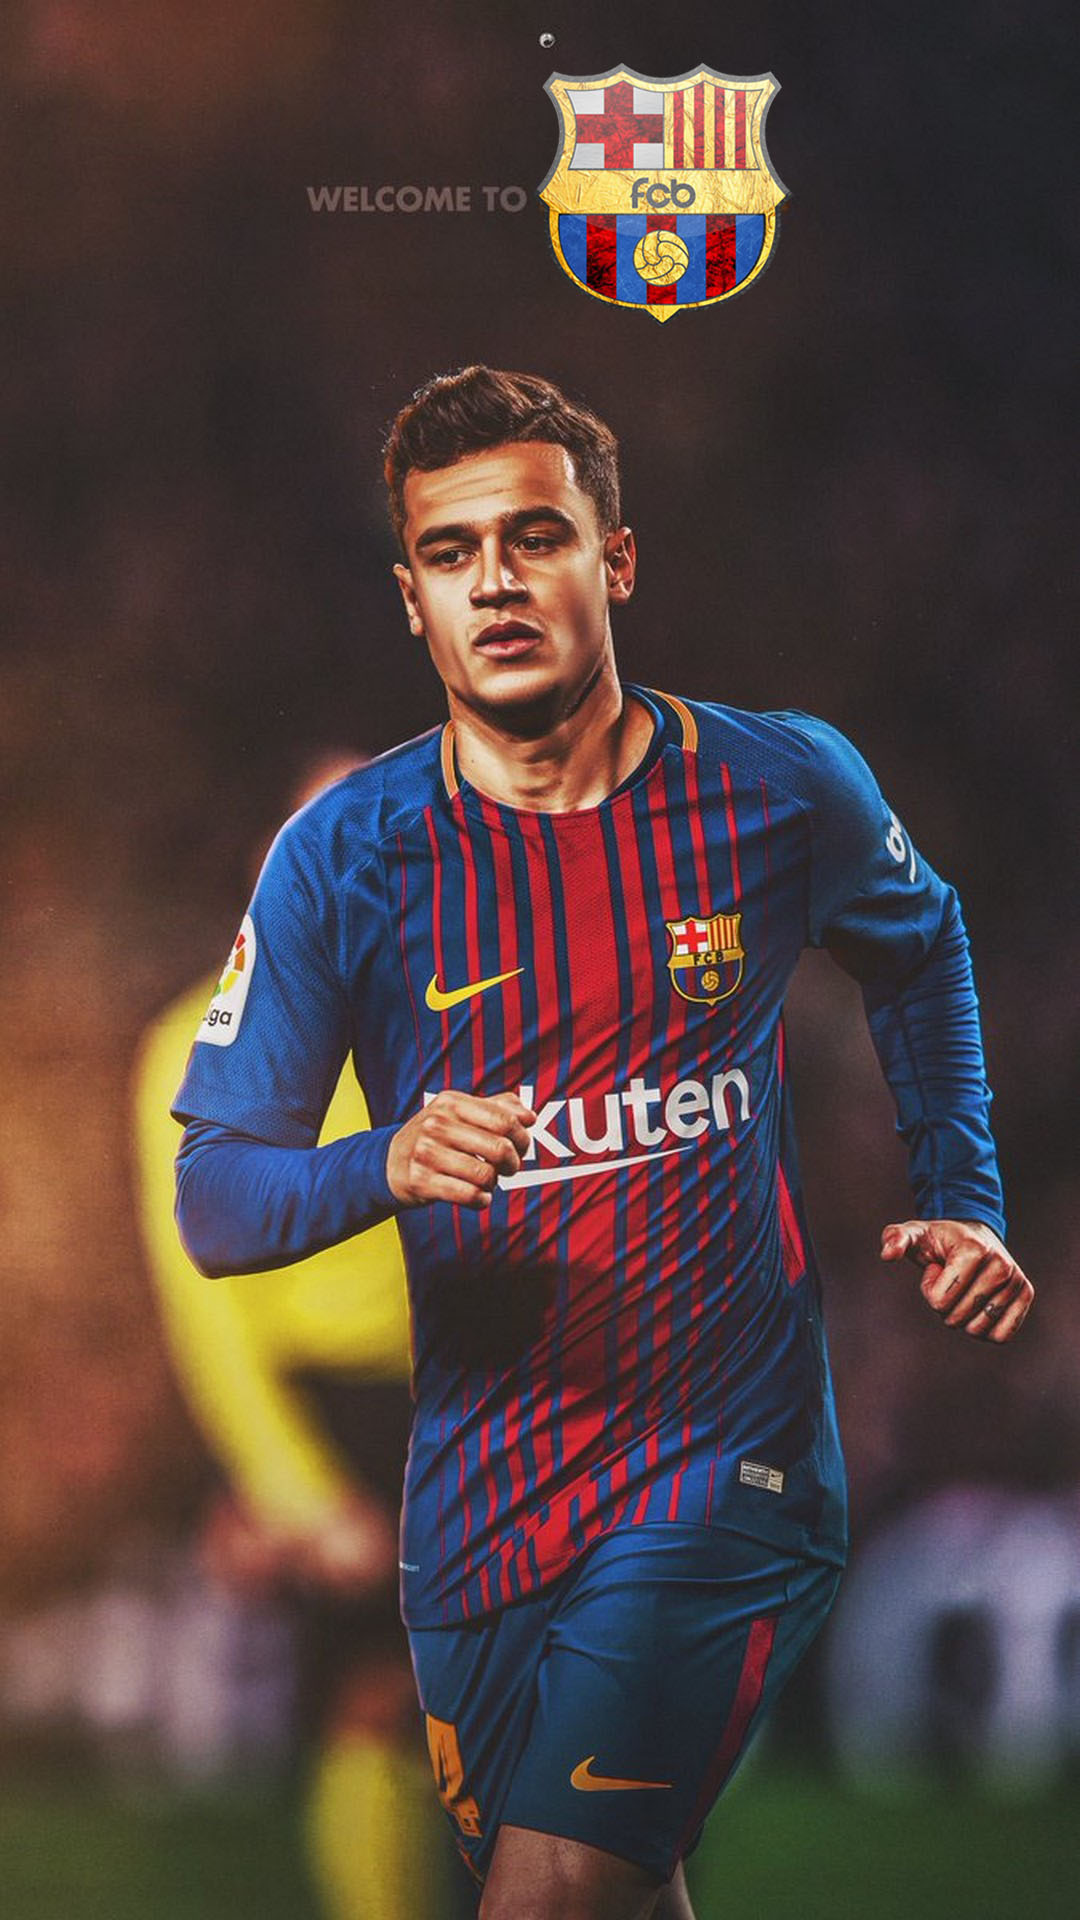 Samsung Mobile Hd Wallpapers Free Download Download Barcelona Coutinho Wallpaper Android Full Size